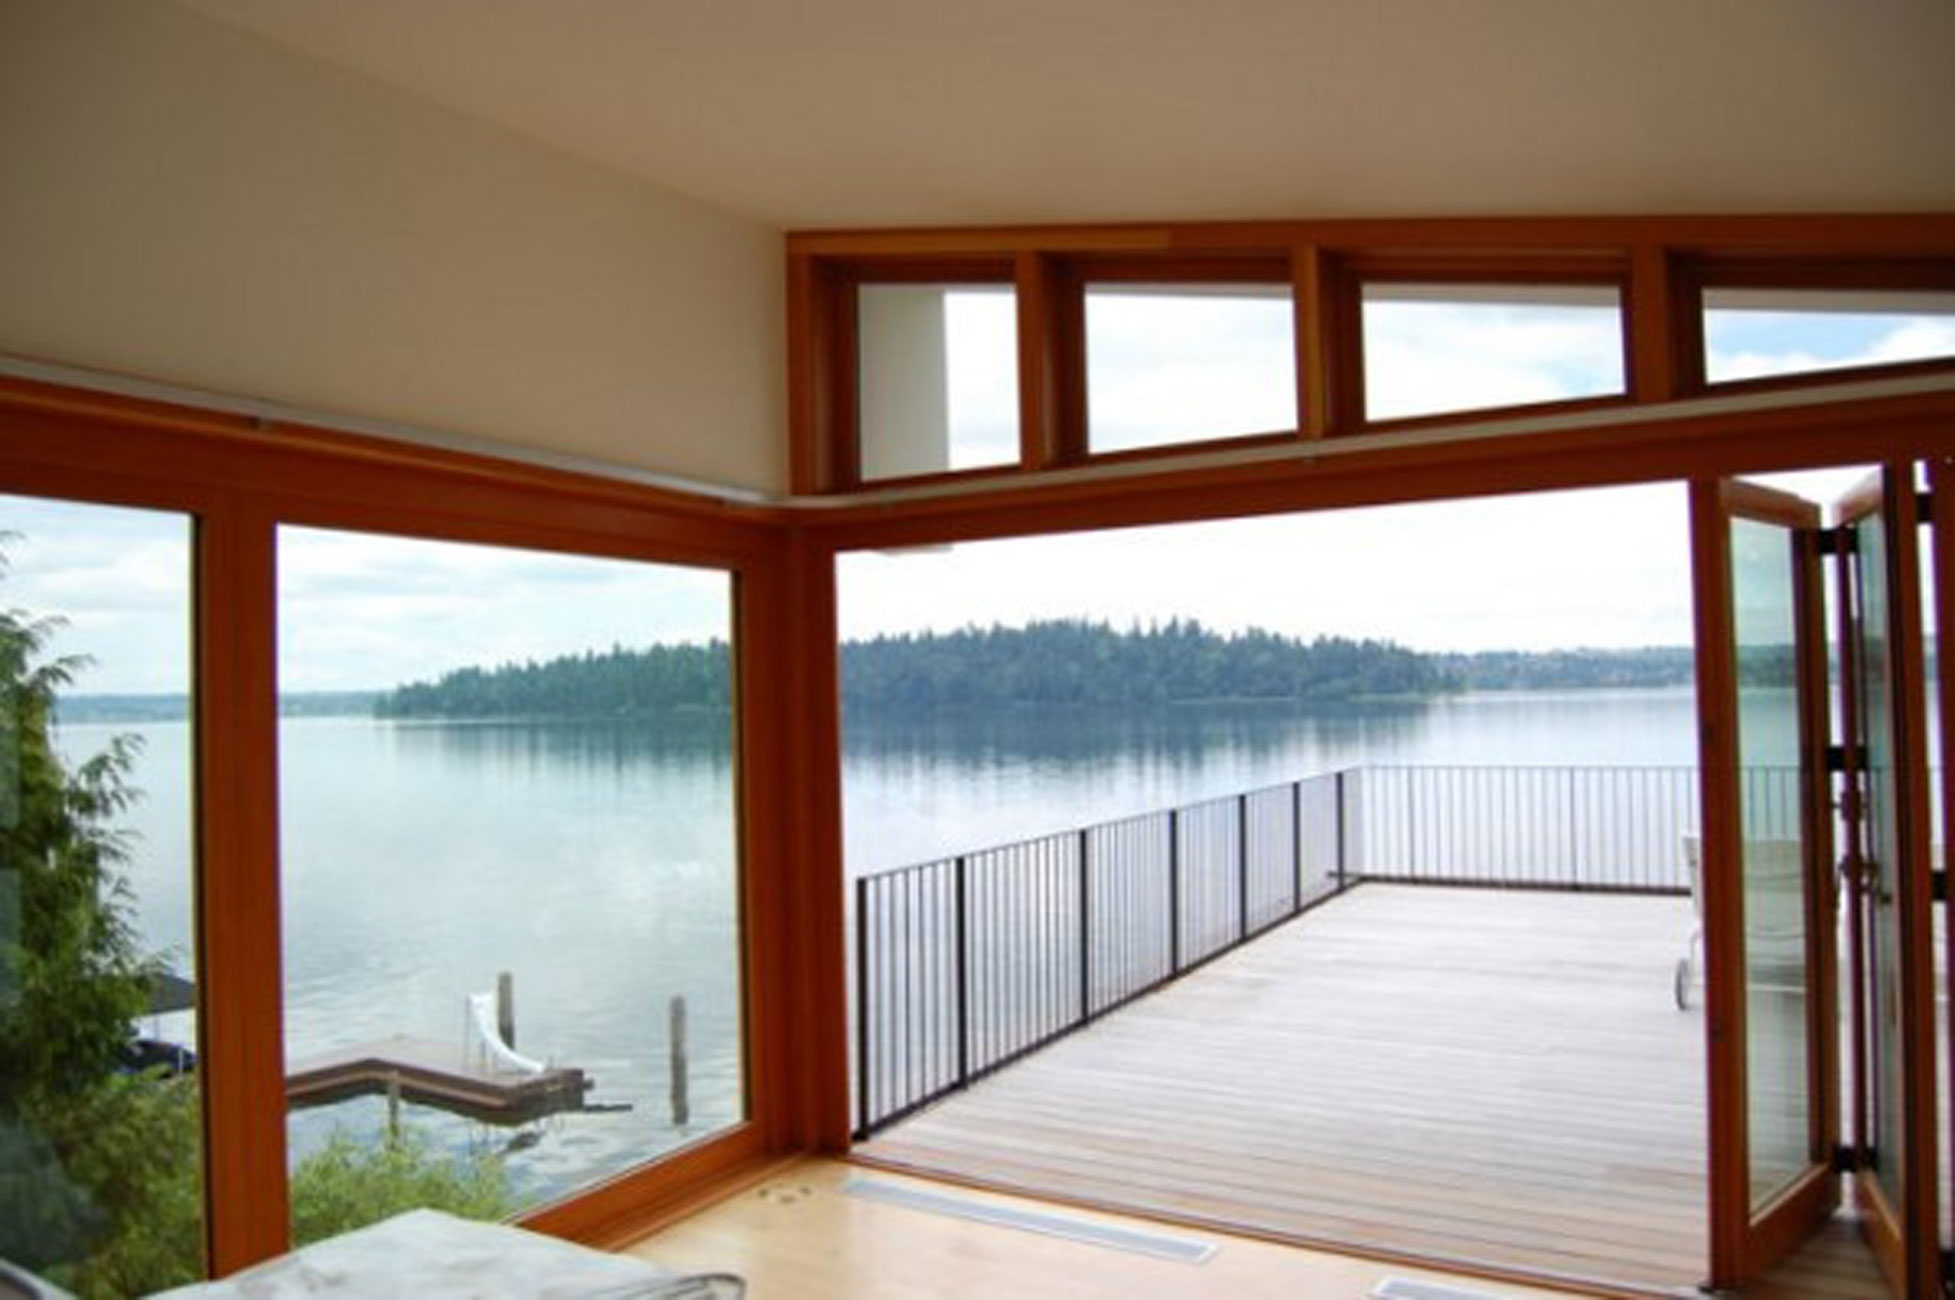 Rustic Lake House in Washington with Modern Architecture ... on contemporary house plans, art house plans, victorian house plans, simple house plans, design house plans, narrow width house plans, replica house plans, great house plans, unique house plans, southern house plans, decorative house plans, 50's style house plans, mediterranean house plans, le corbusier house plans, craftsman house plans, interlocking house plans, daybreak house plans, traditional cottage house plans, luxury house plans, country house plans,